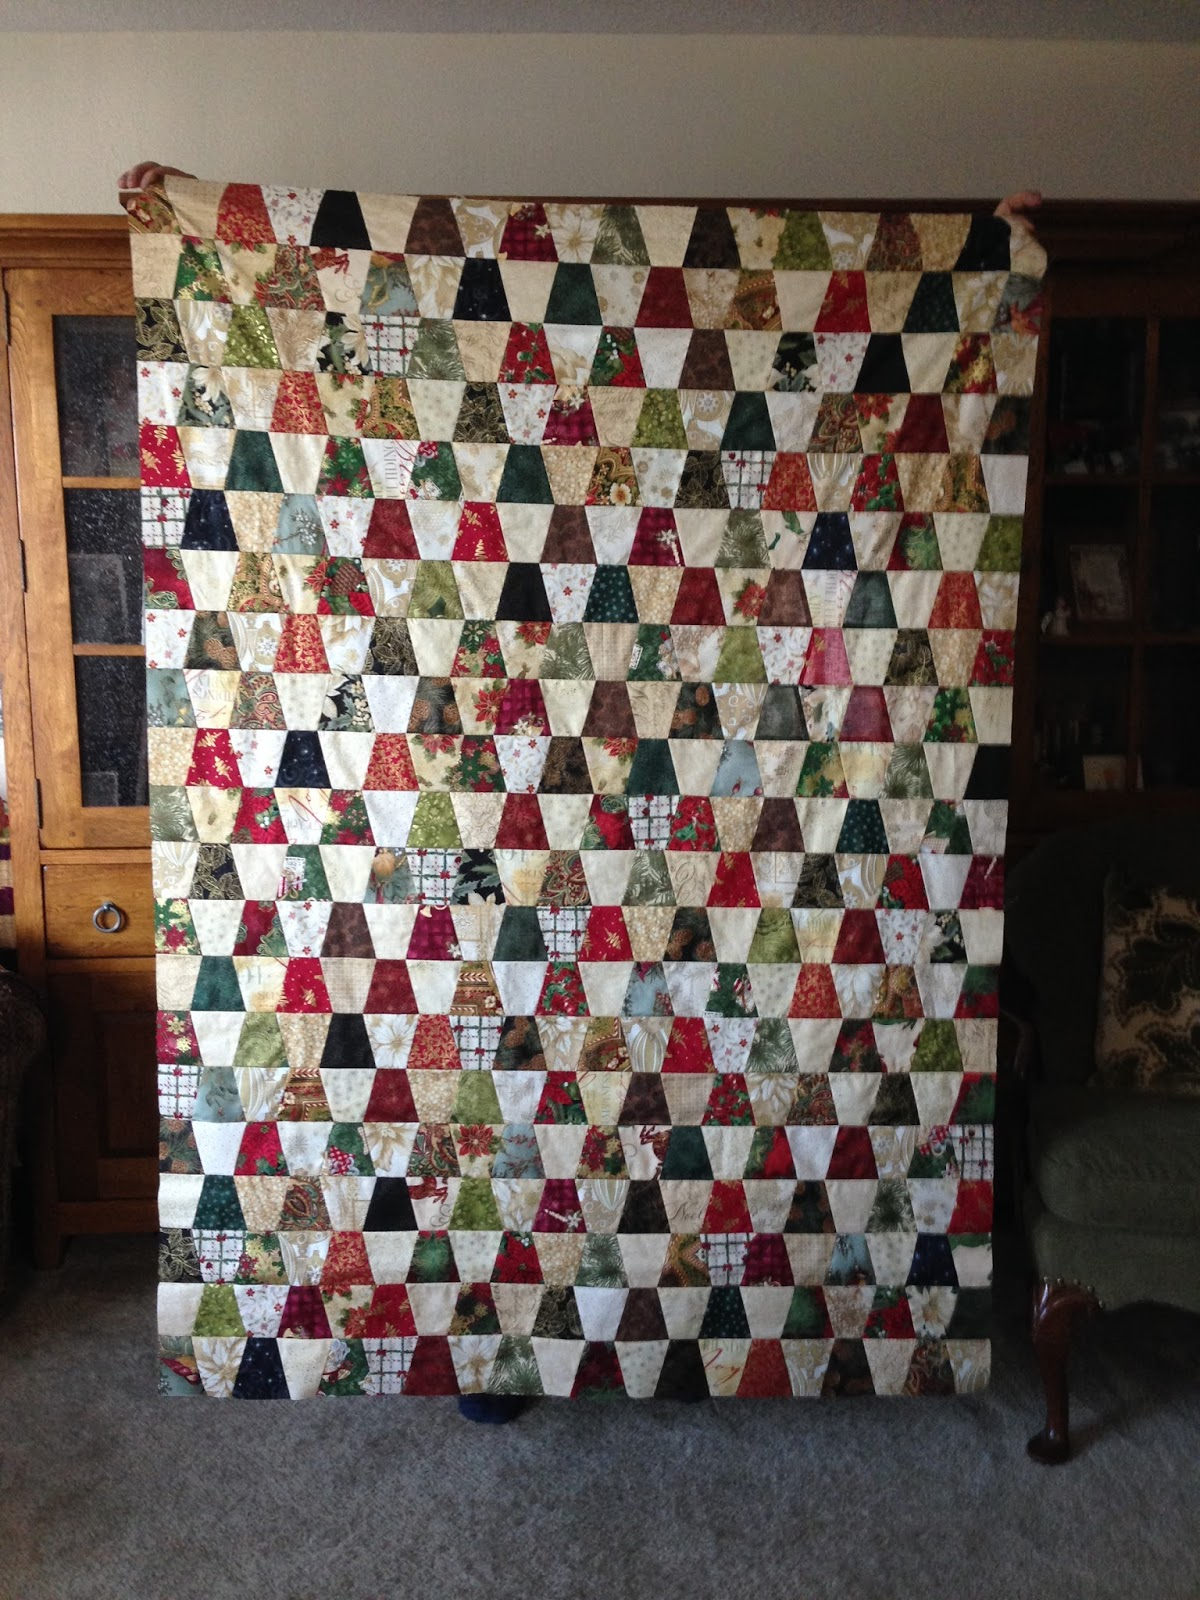 worthy quilts sale for charity they give cottage the to weeks guild agreed causes out auckland many quiltmekiwi i several various back some quilt cottages